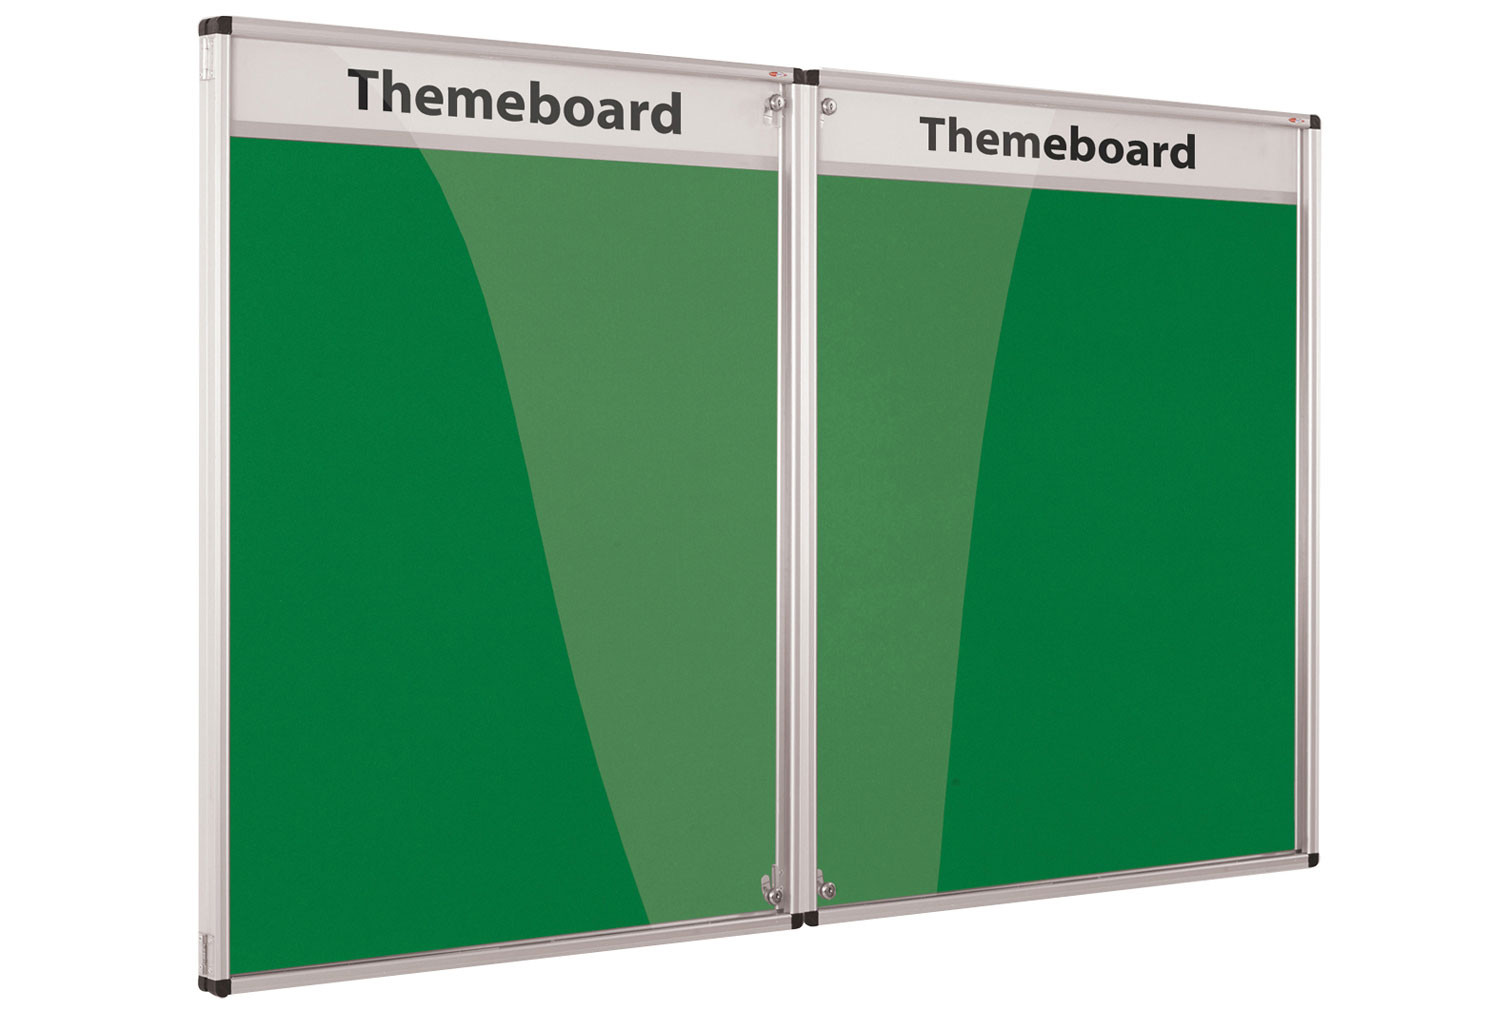 Tamperproof Themeboard Noticeboard